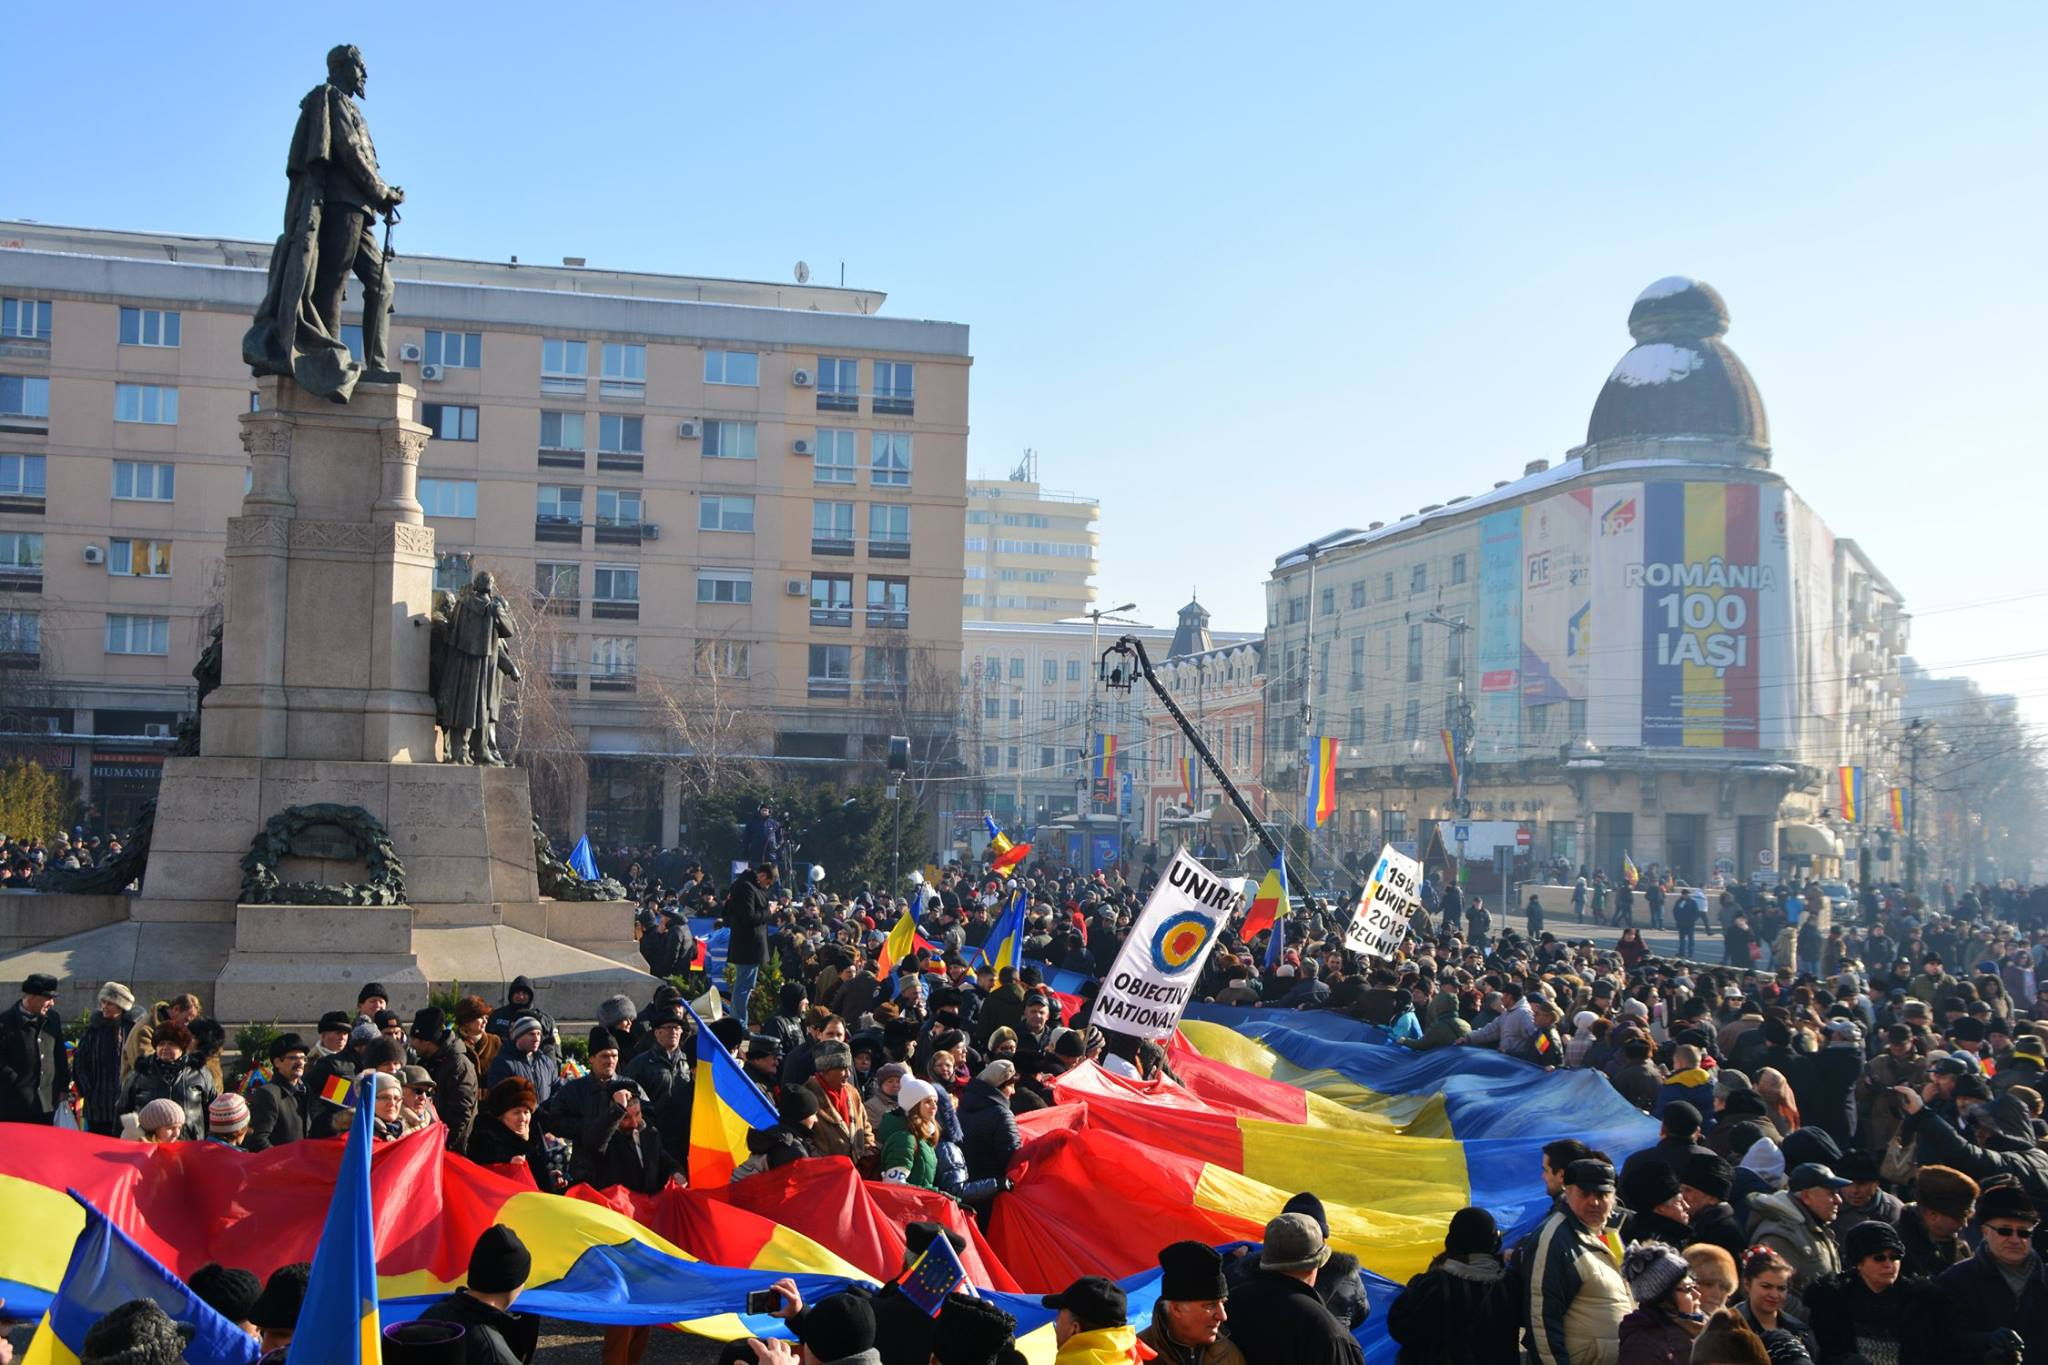 Manifestations is Chisinau calling for Romanian Union